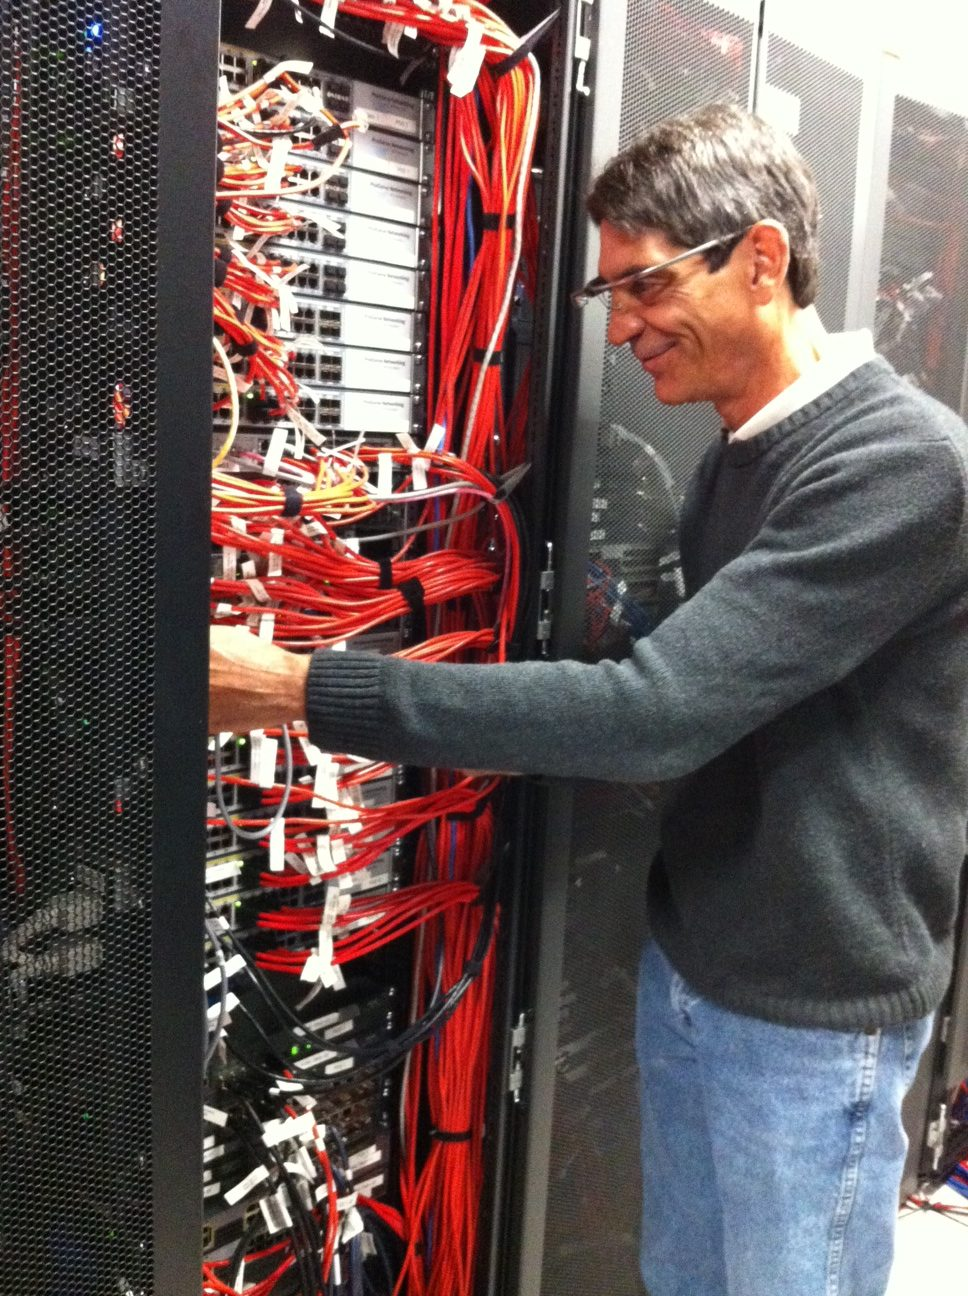 Michael with Google Glass and networking in the lab